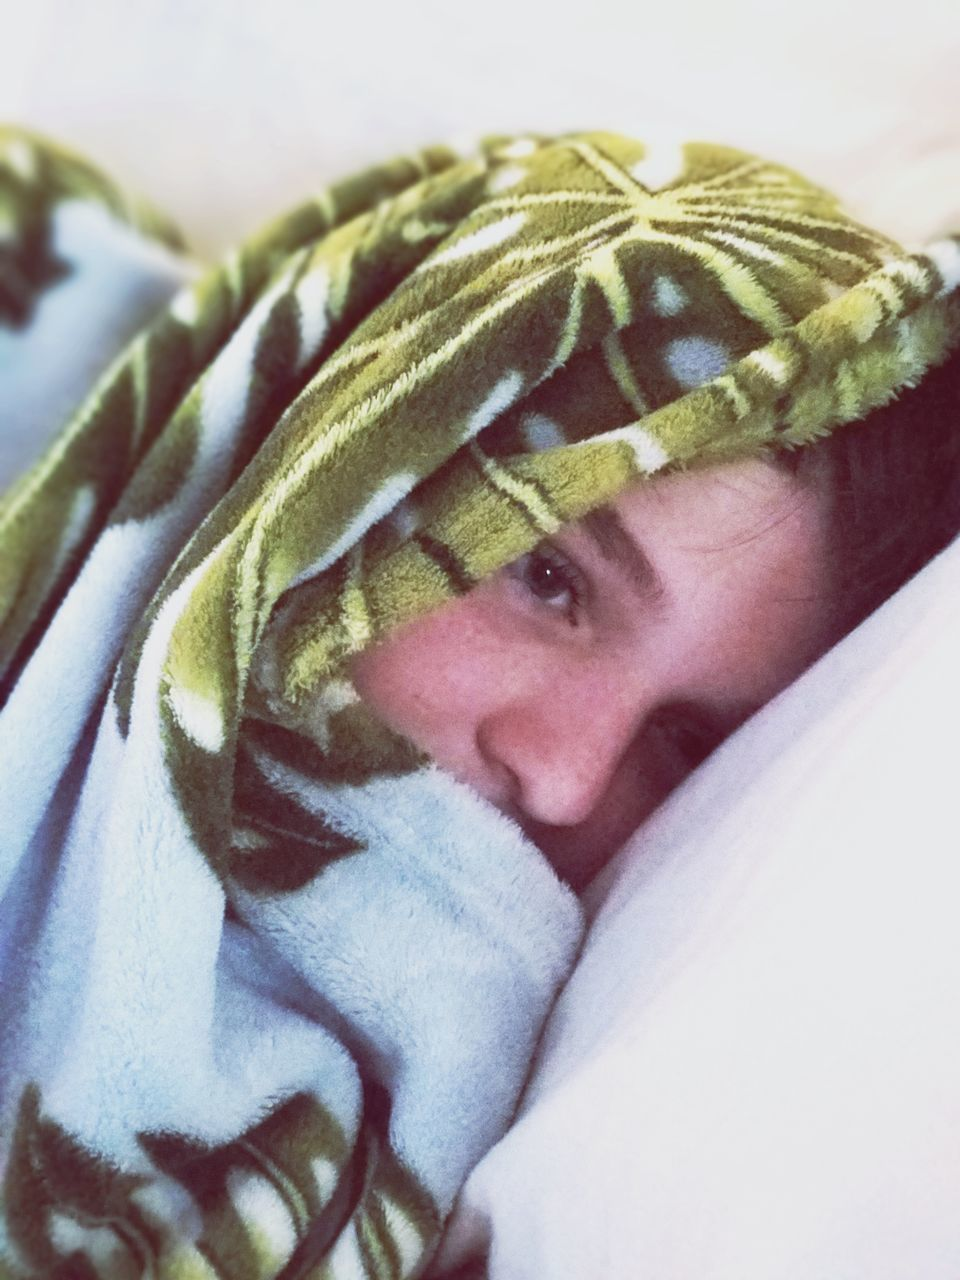 CLOSE-UP PORTRAIT OF CUTE BOY LYING ON BED